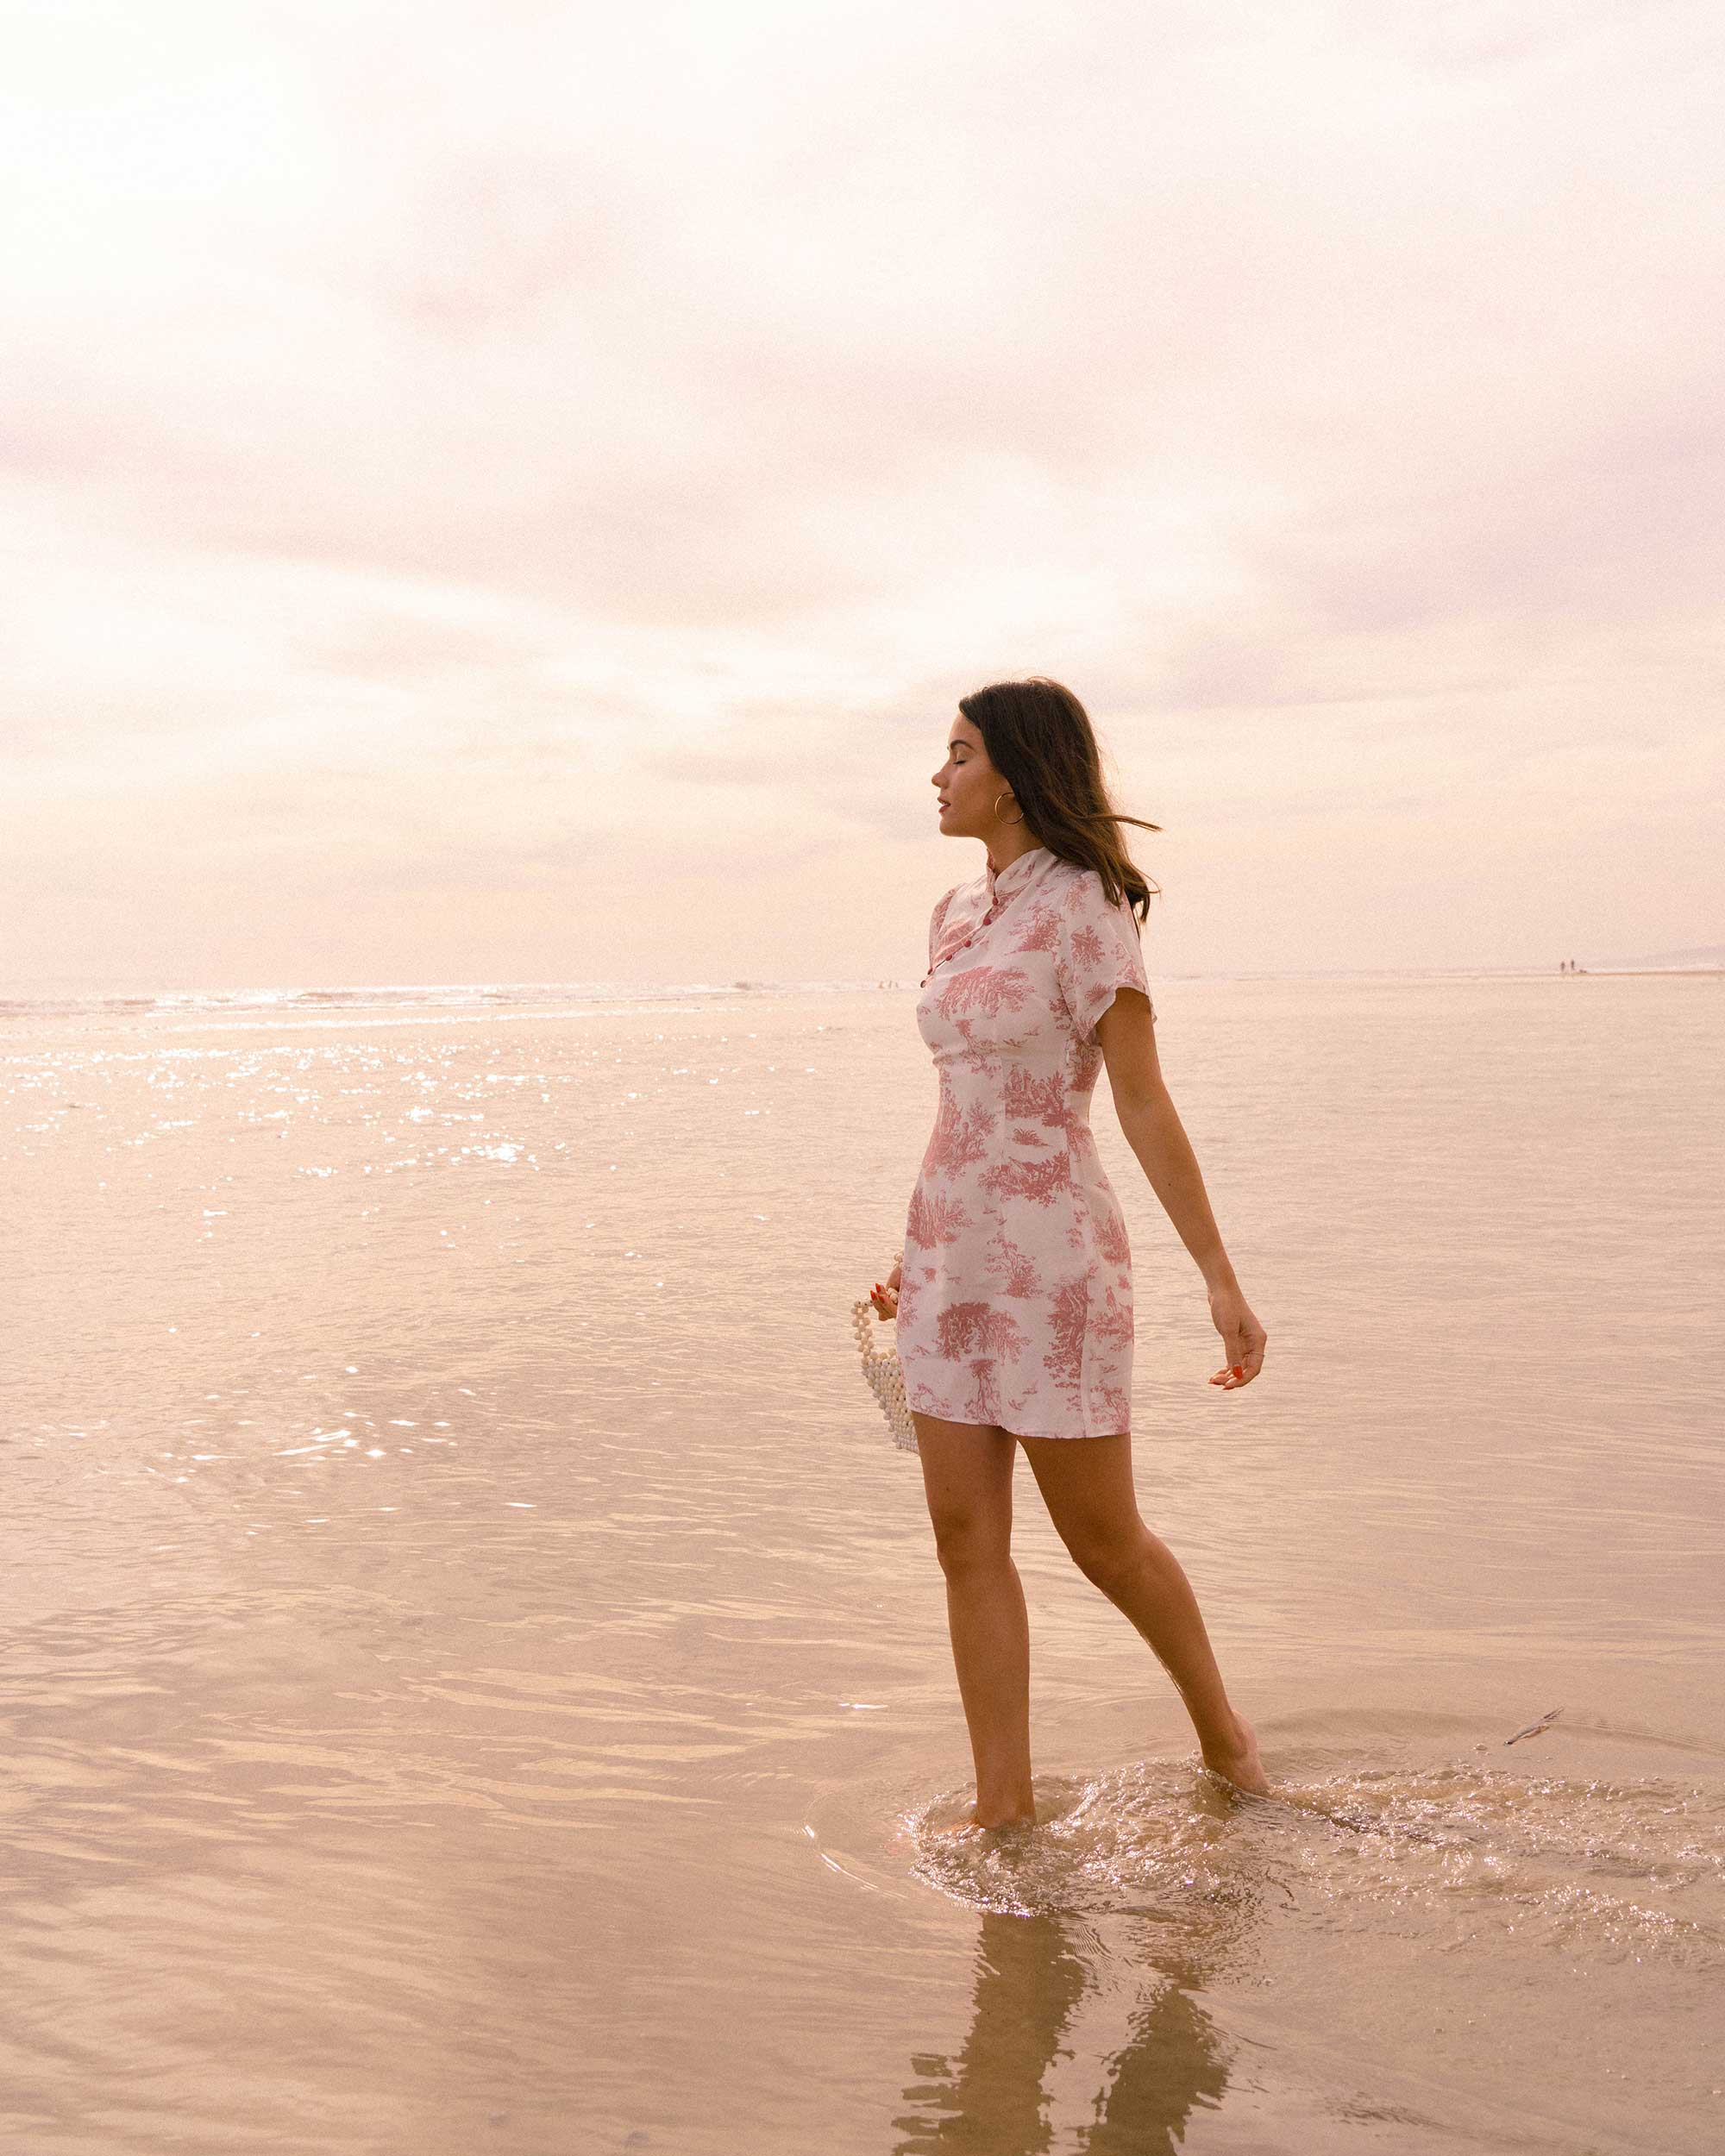 Sarah Butler of Sarah Styles Seattle wears Stone Cold Fox Lure Pink Toile Print Mini Dress in Newport Beach, California for the perfect spring outfit | @sarahchristine -8.jpg